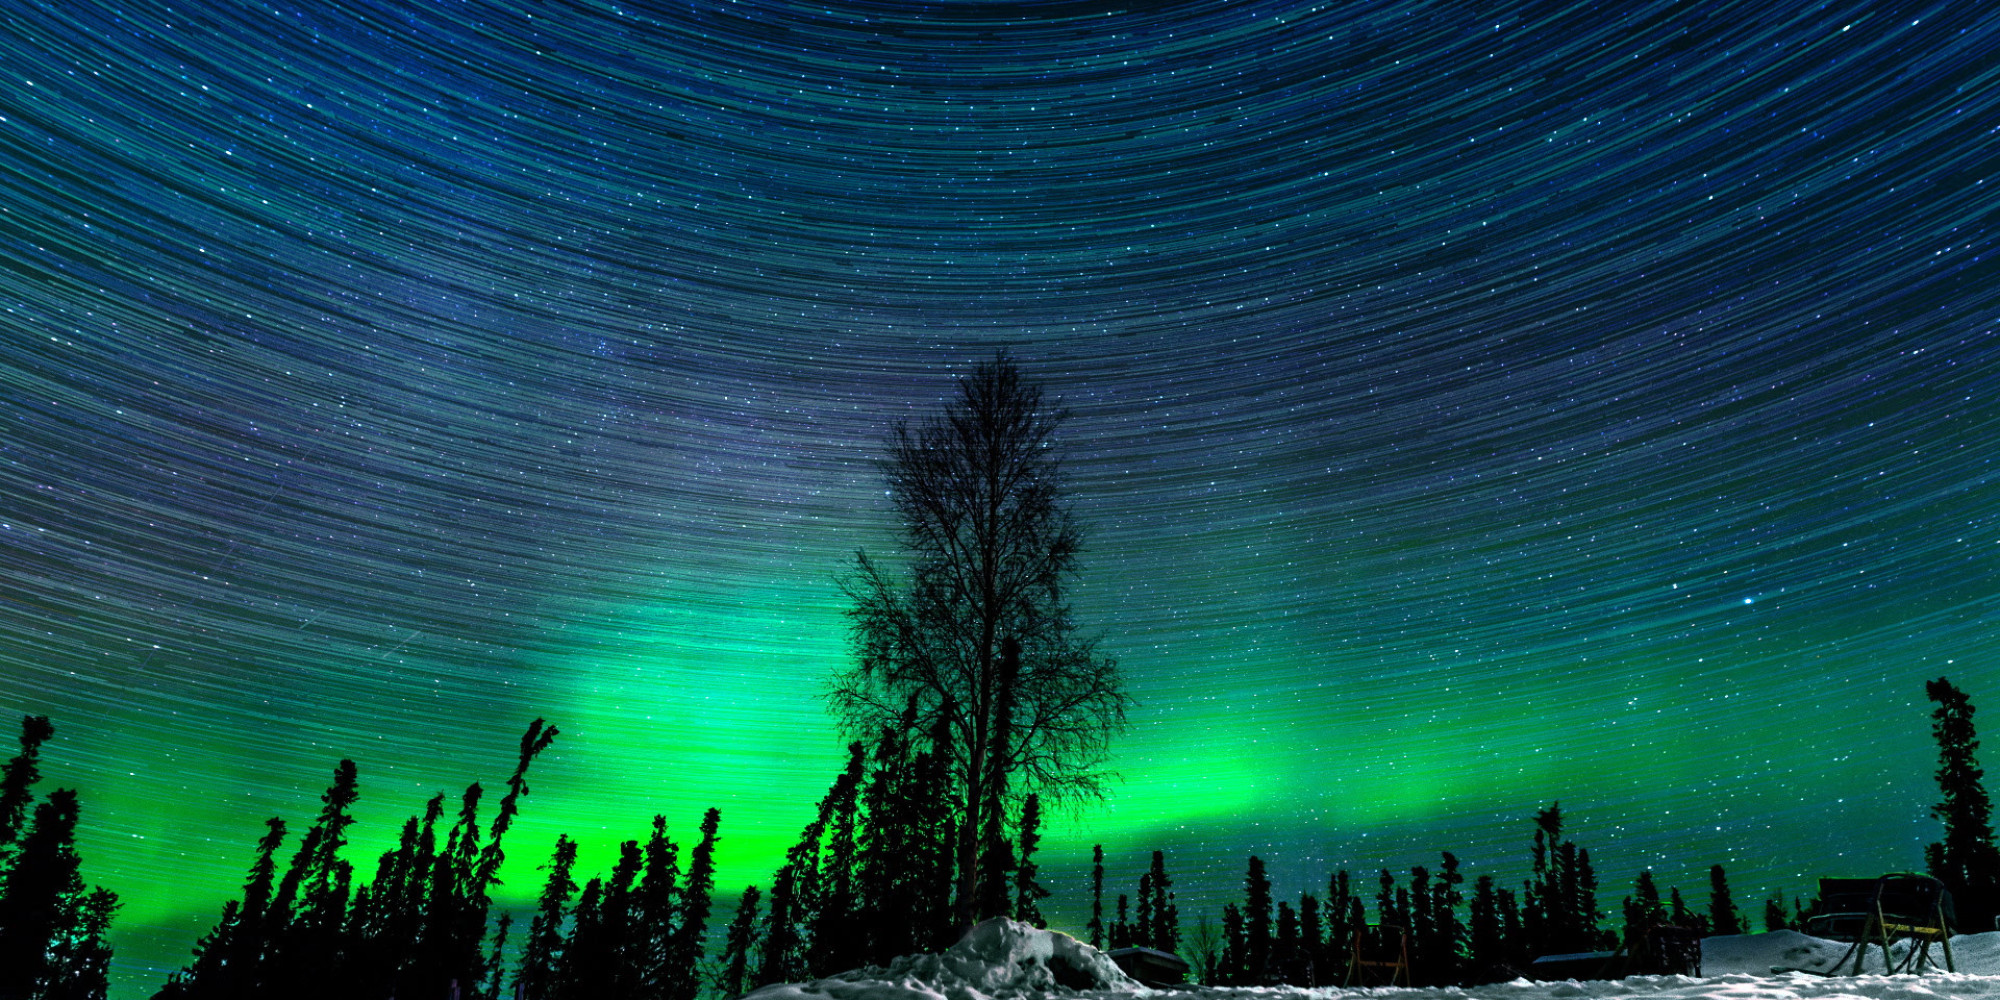 Hypnotic Northern Lights Time Lapse Captured Over 2